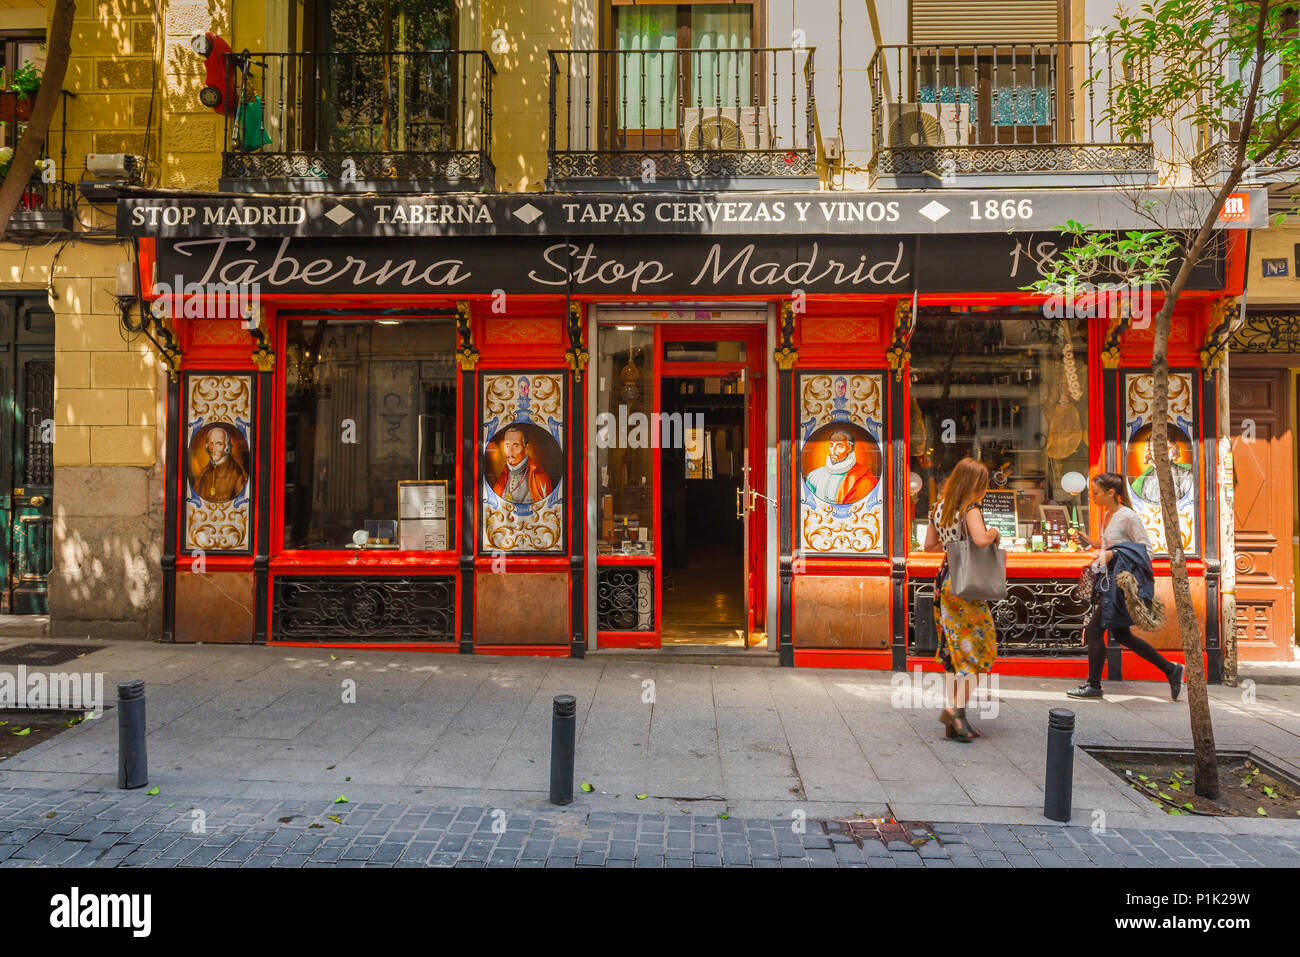 View of the colourful front of a bar in the Huertas area of Madrid, Spain. - Stock Image